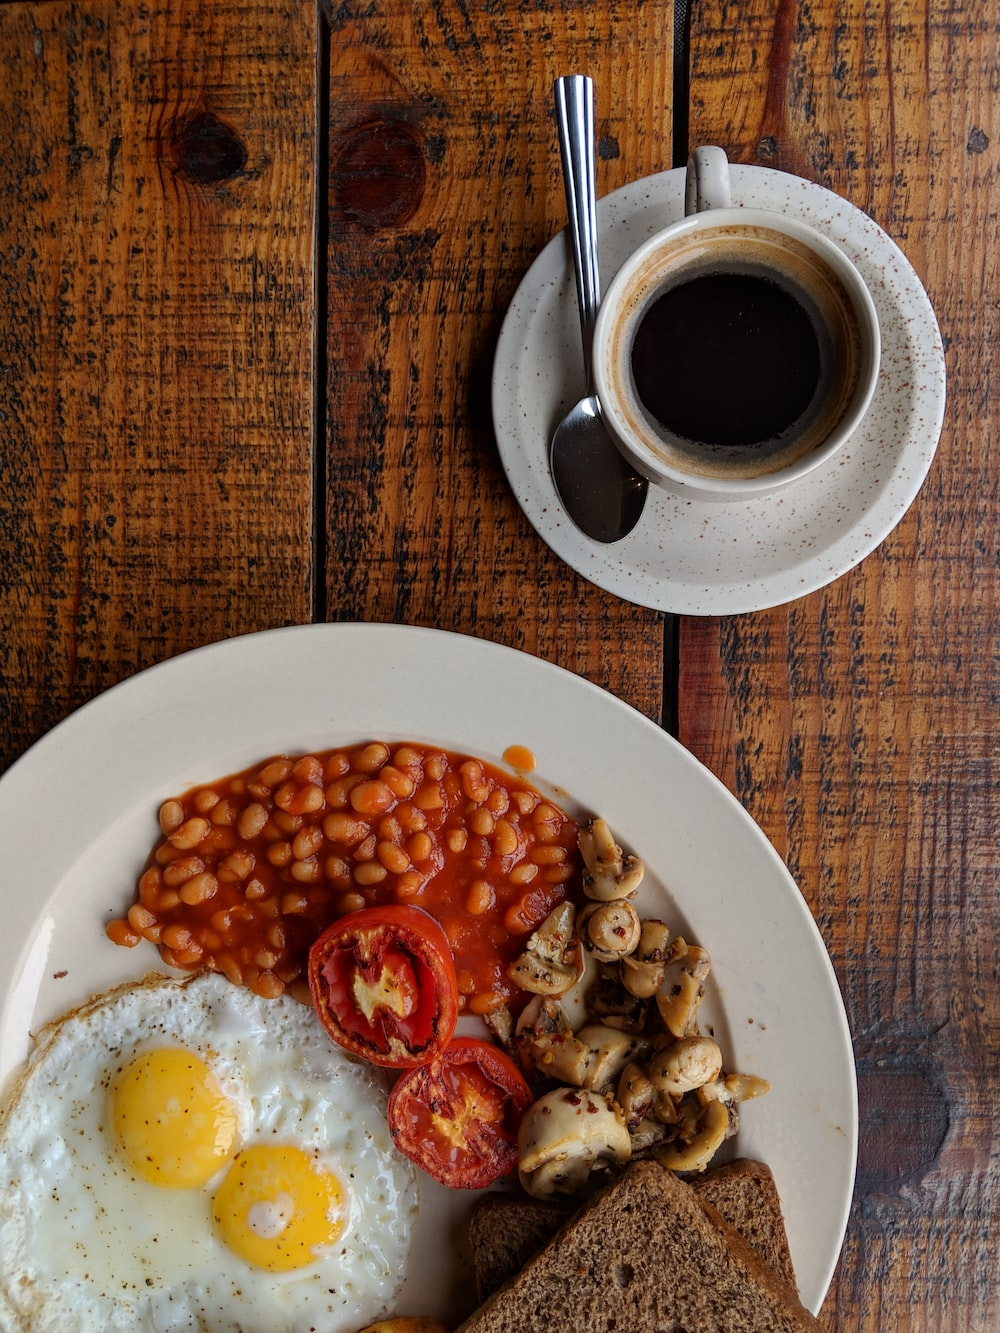 black coffee near sunny side up egg with sliced tomatoes, mushroom and bread on plate